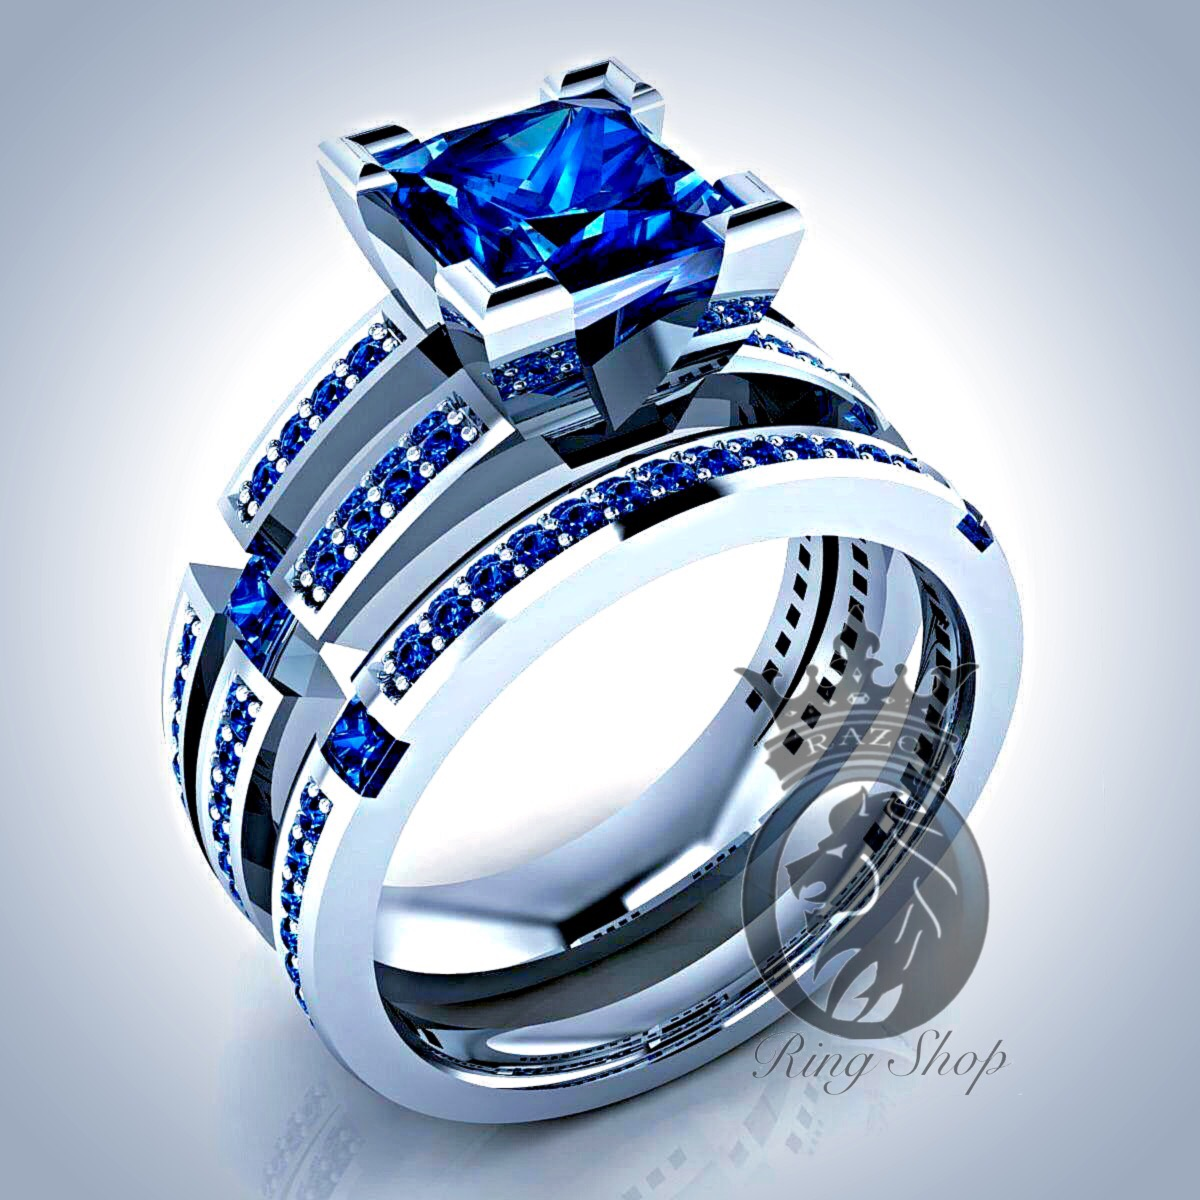 r2 d2 engagement ring - R2d2 Wedding Ring